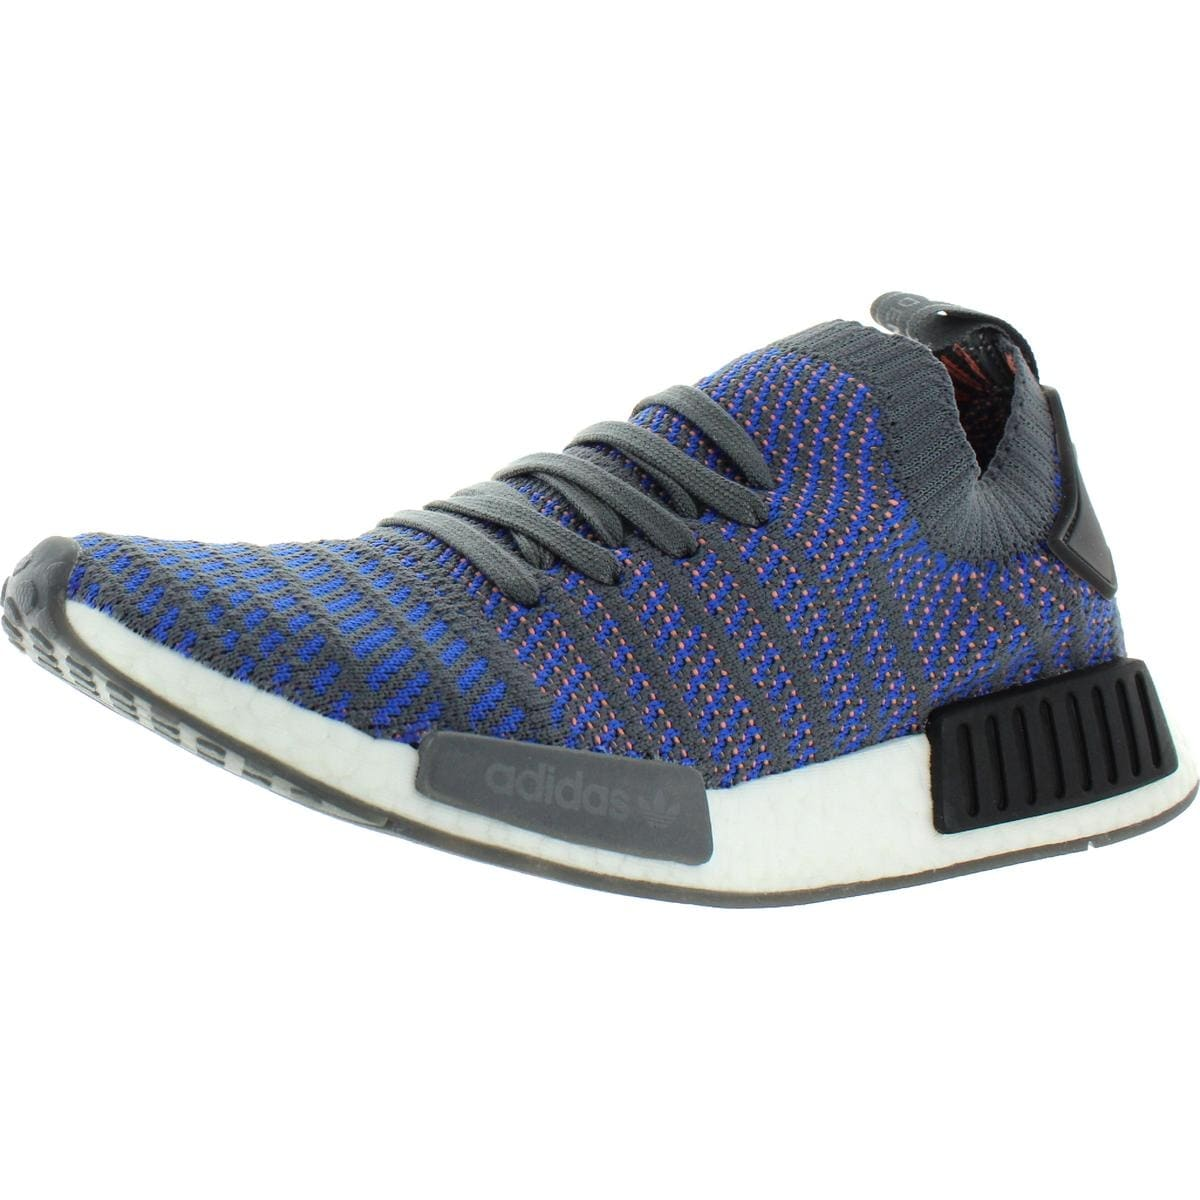 Adidas Mens NMD R1 STLT PK Sneakers Running Workout